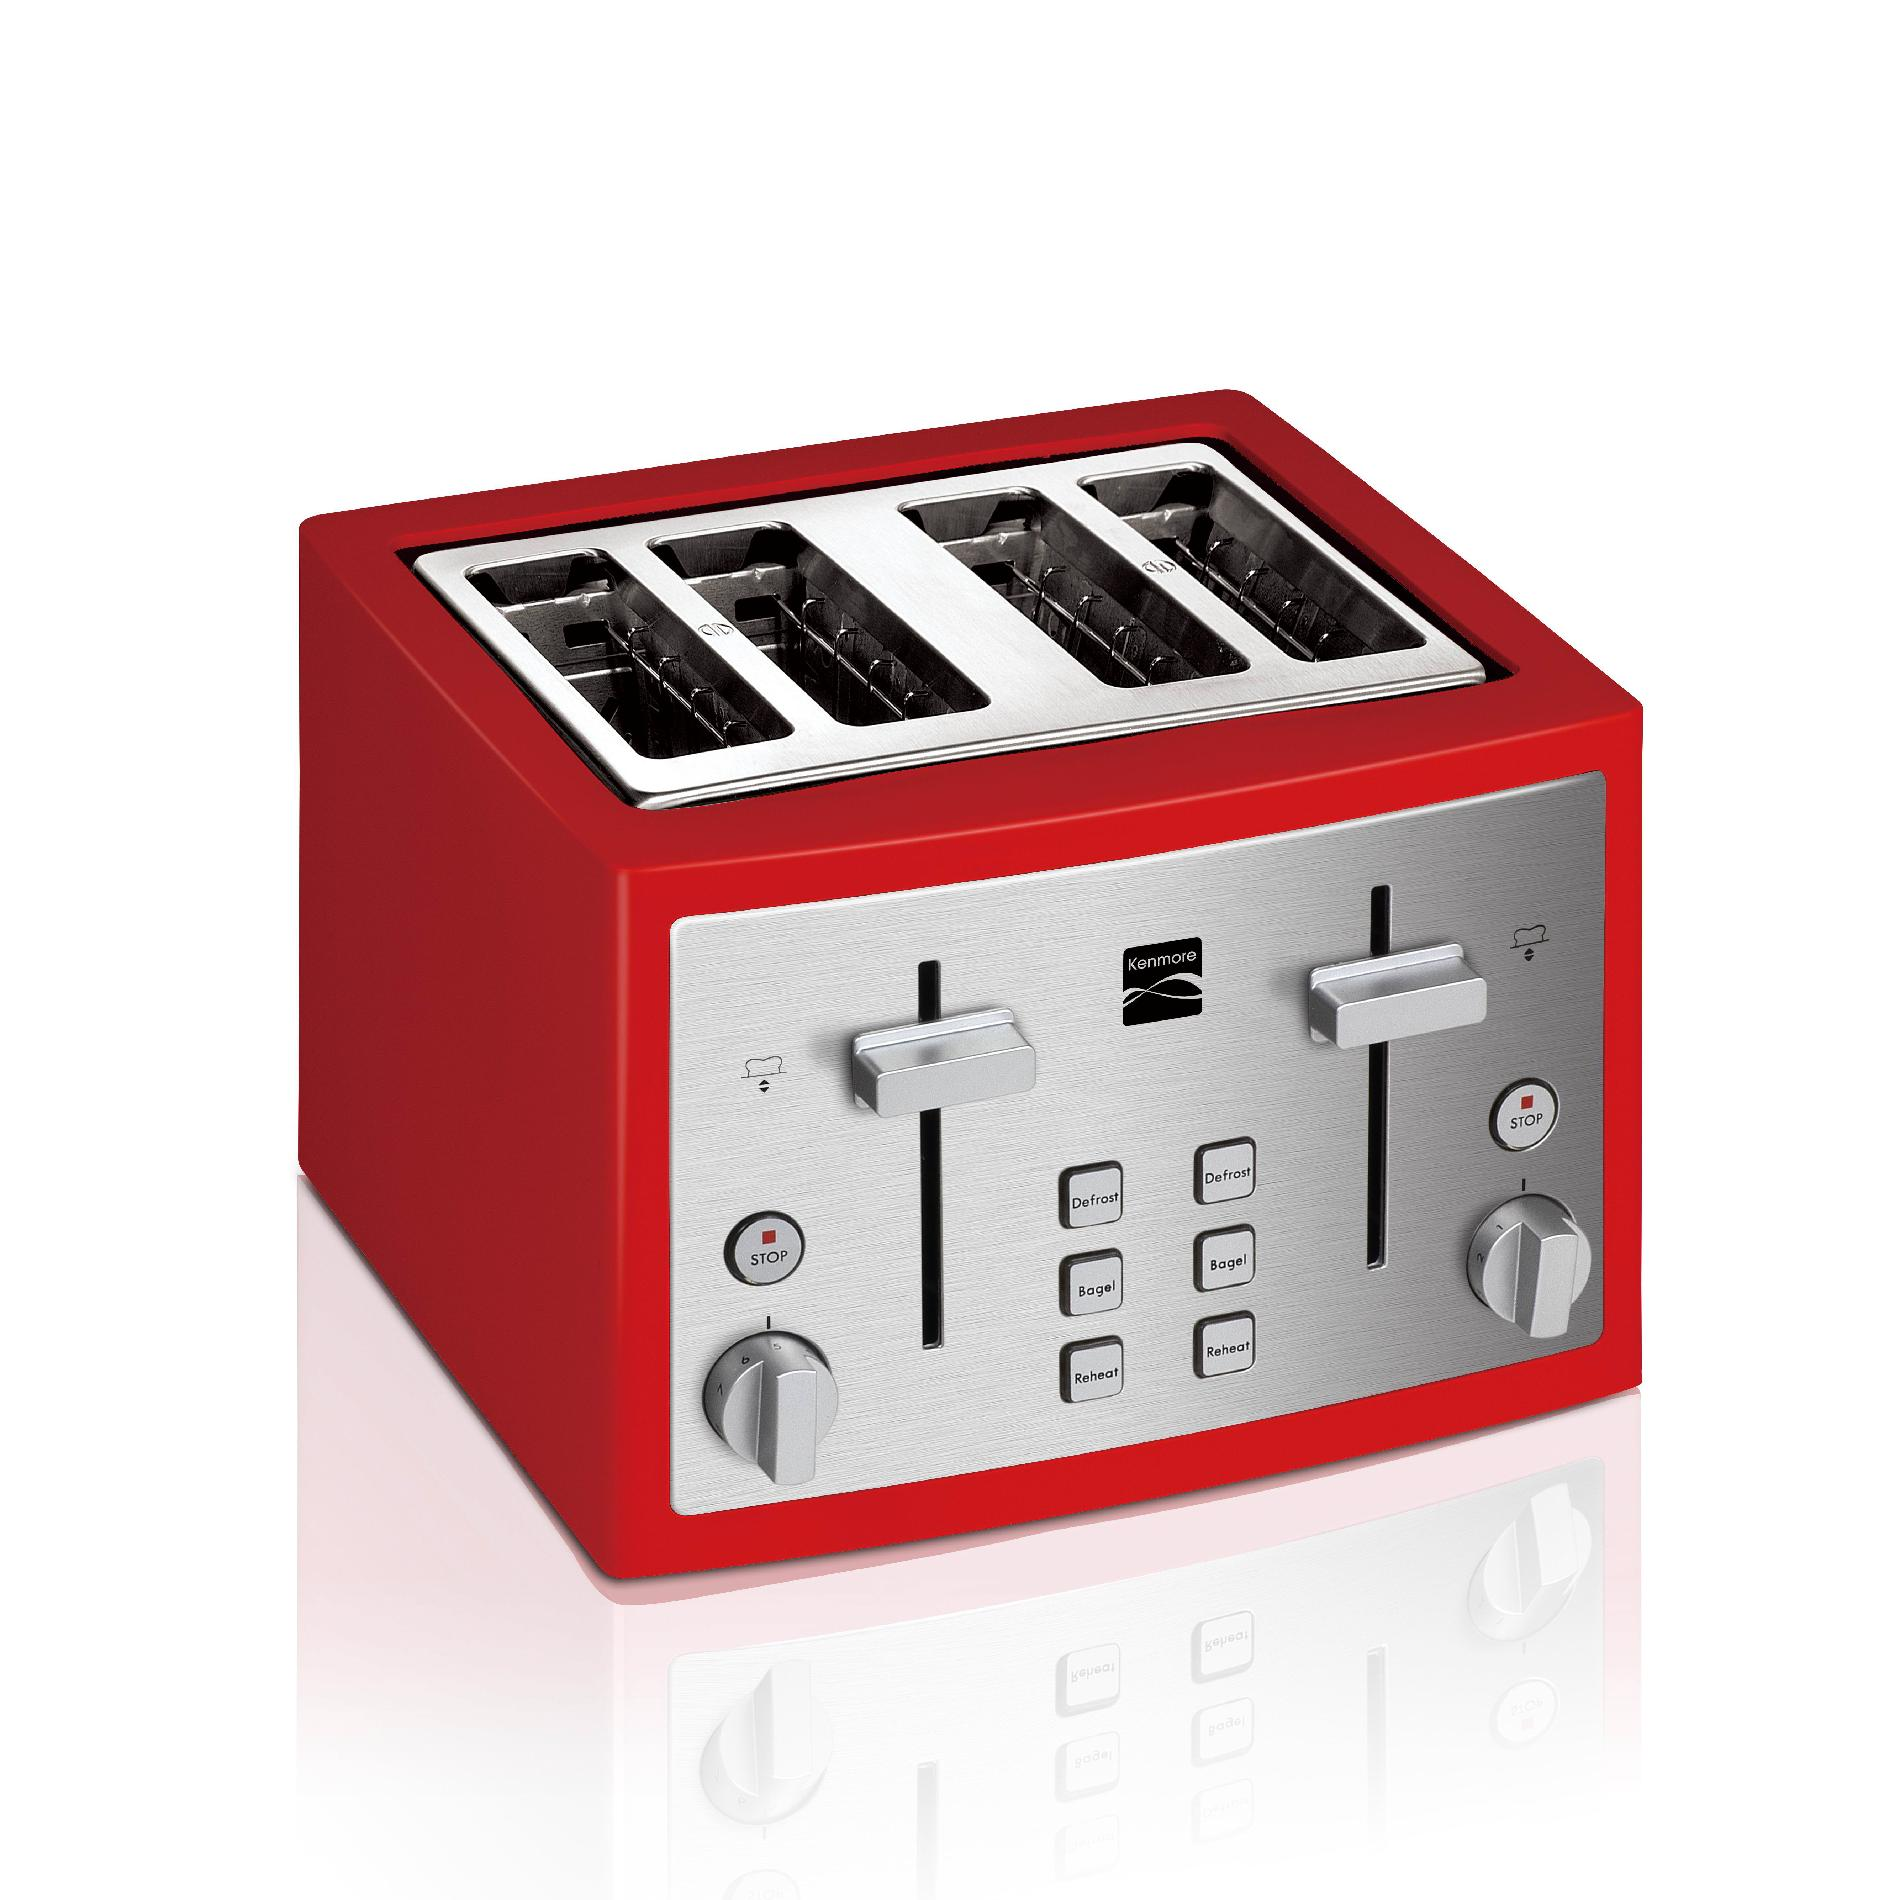 Kenmore 4-Slice Toaster